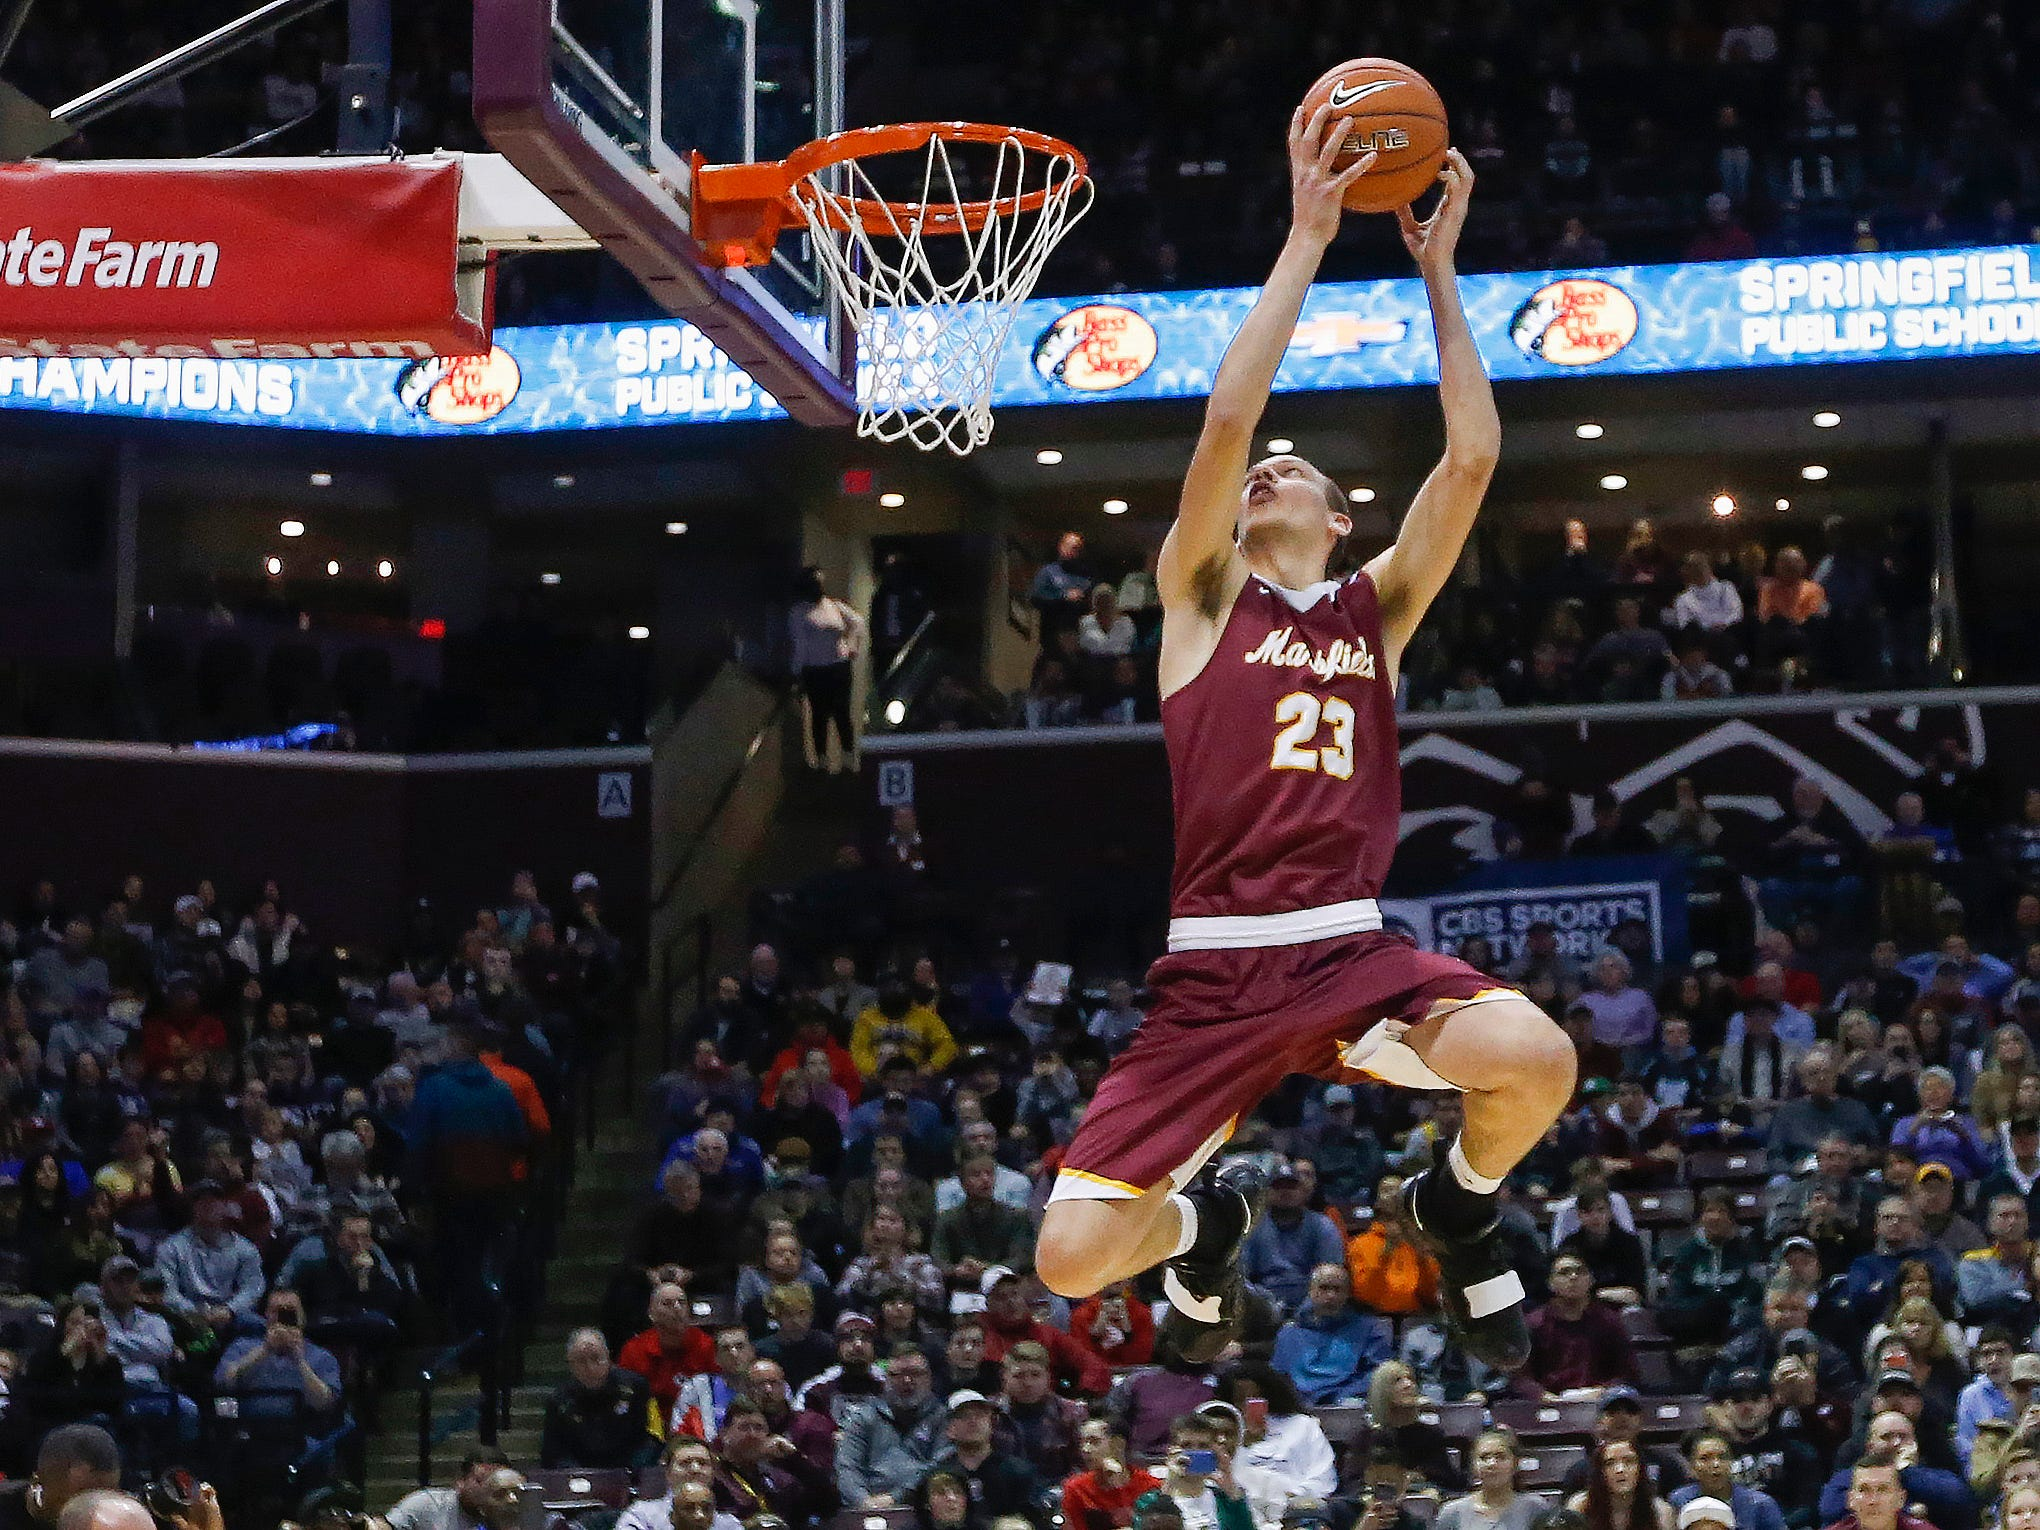 Dylan Caruso, of Mansfield, competes in the slam dunk contest at the Bass Pro Shops Tournament of Champions at JQH Arena on Saturday, Jan. 19, 2019.